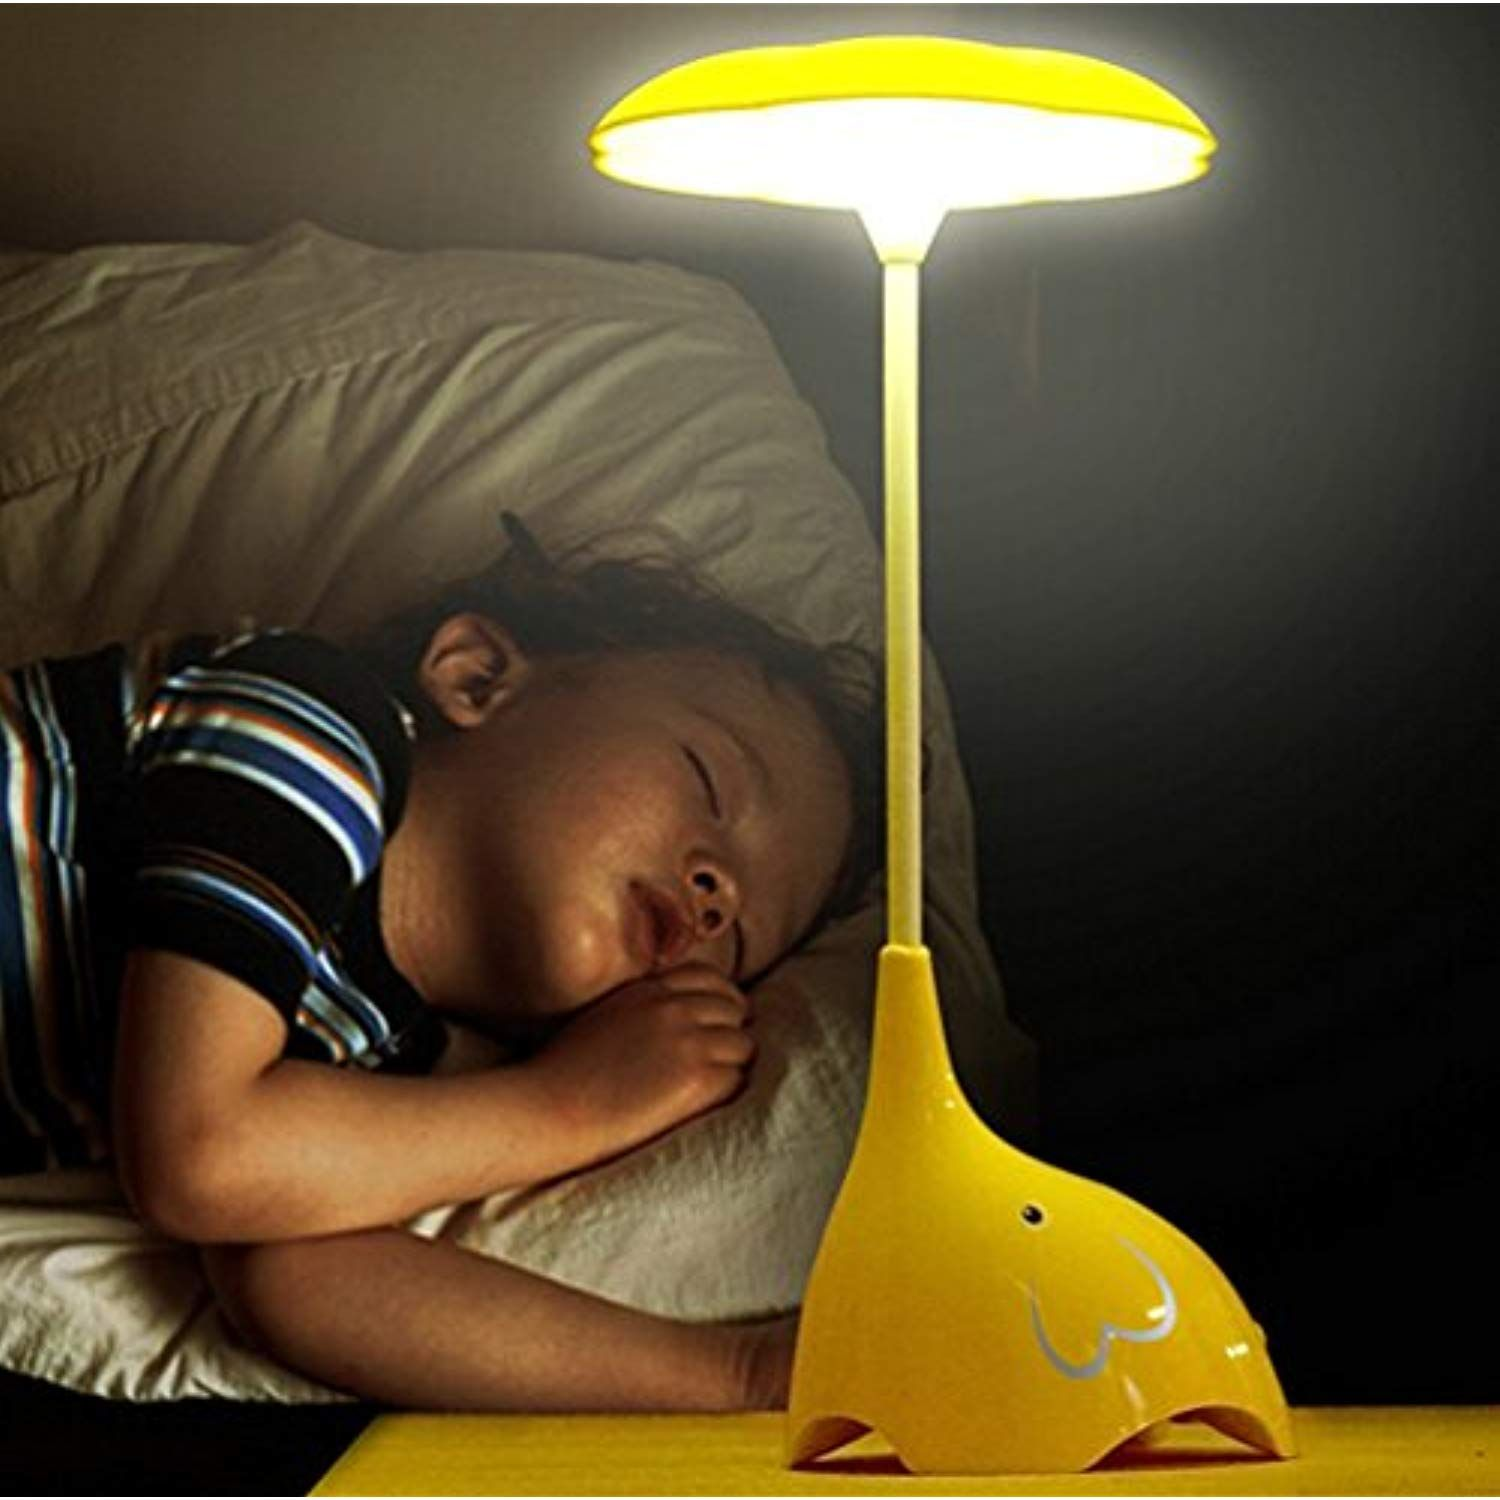 Womhope Cute Elephant Children S Night Lights Flexible Angles Desk Lamp Design Button Touch Sensor Co Night Light Kids Childrens Night Light Baby Night Light